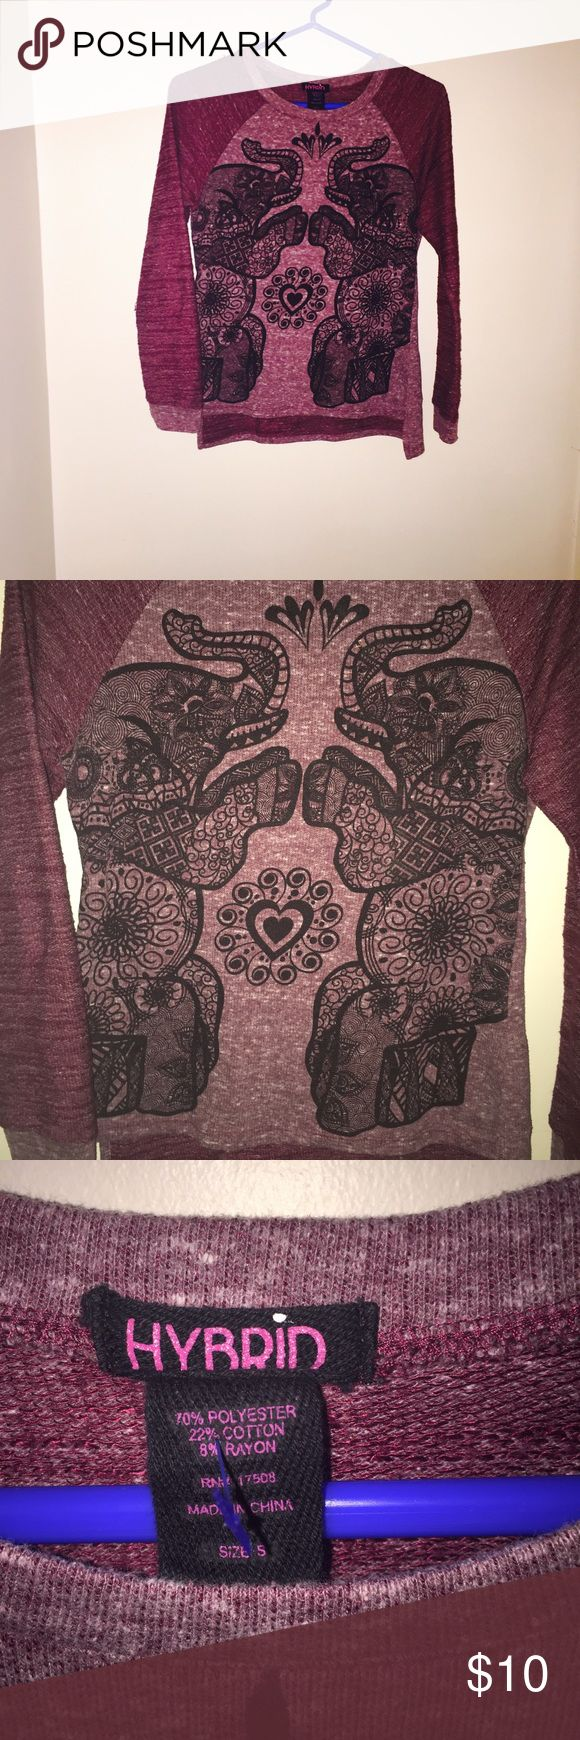 Light elephant sweater Like new and comes with a free gift! hybrid Sweaters Crew & Scoop Necks